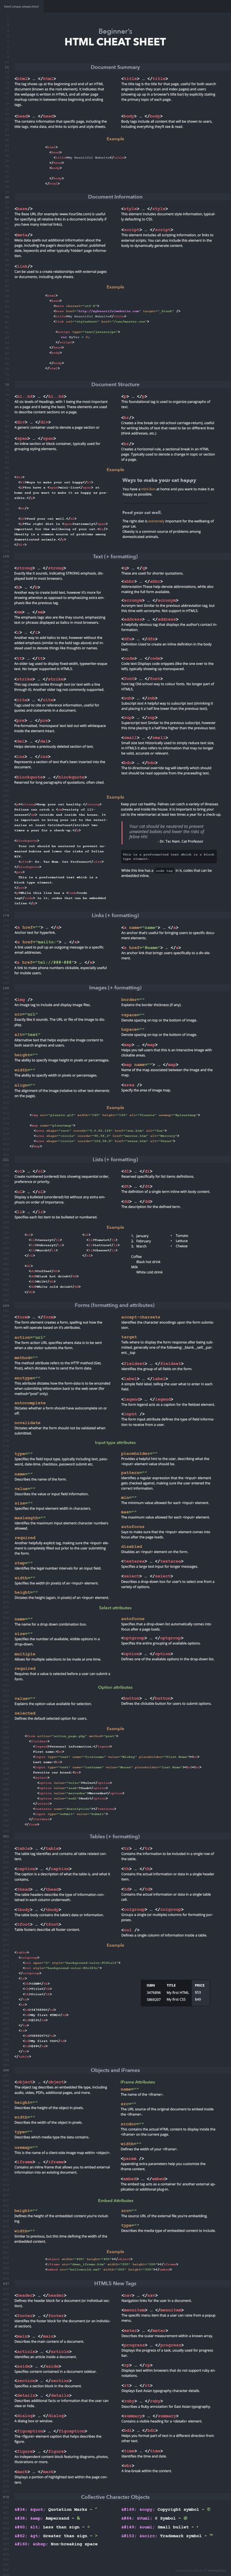 Get a Jump Start on Your Next Web Site with This HTML Cheat Sheet